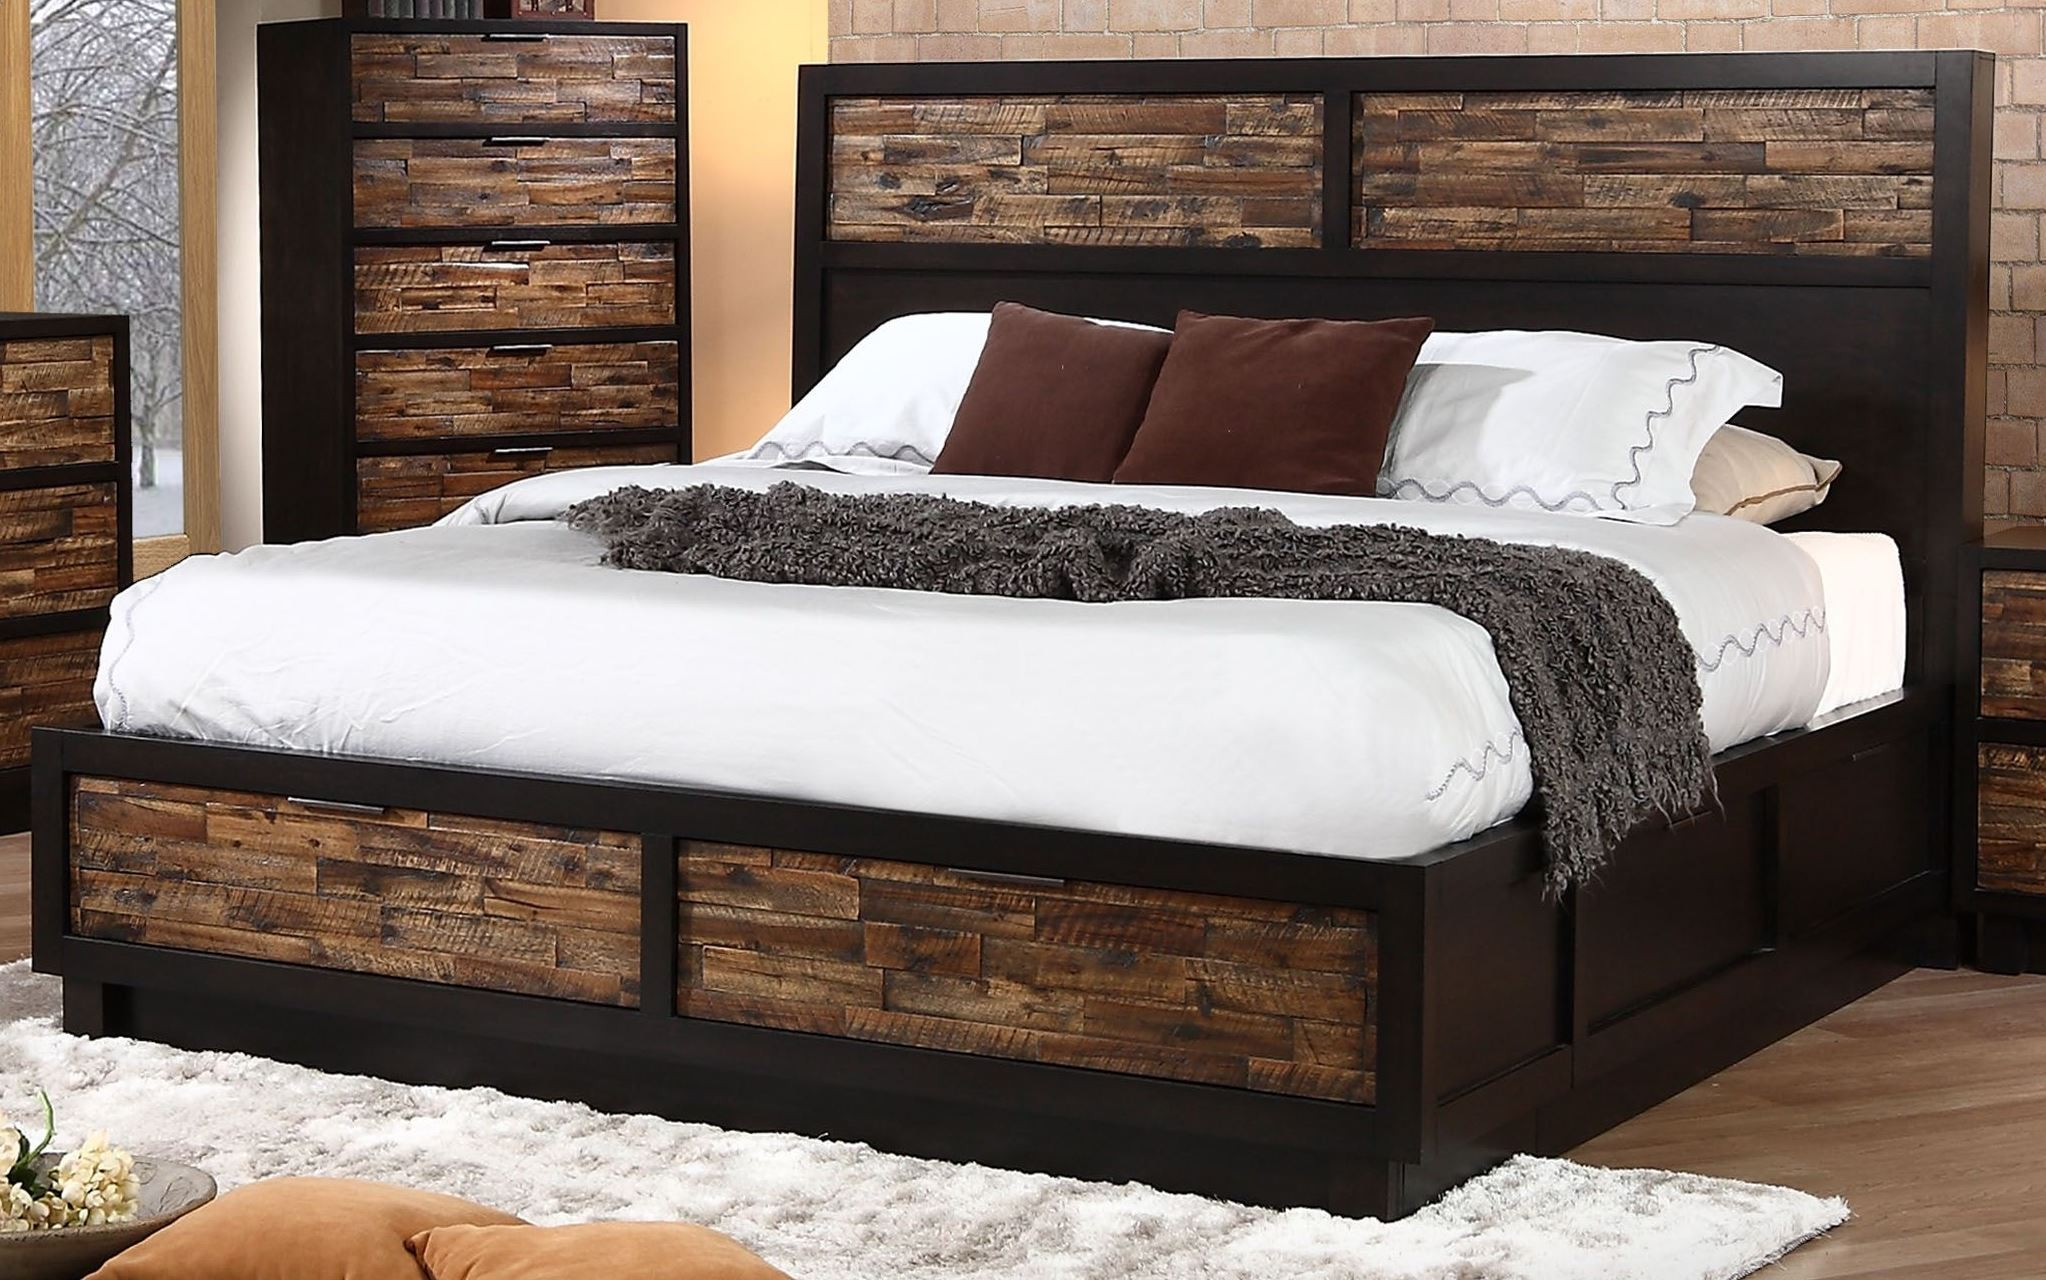 Makeeda rustic cal king platform storage bed from new classics b3105 110 128 230 coleman furniture